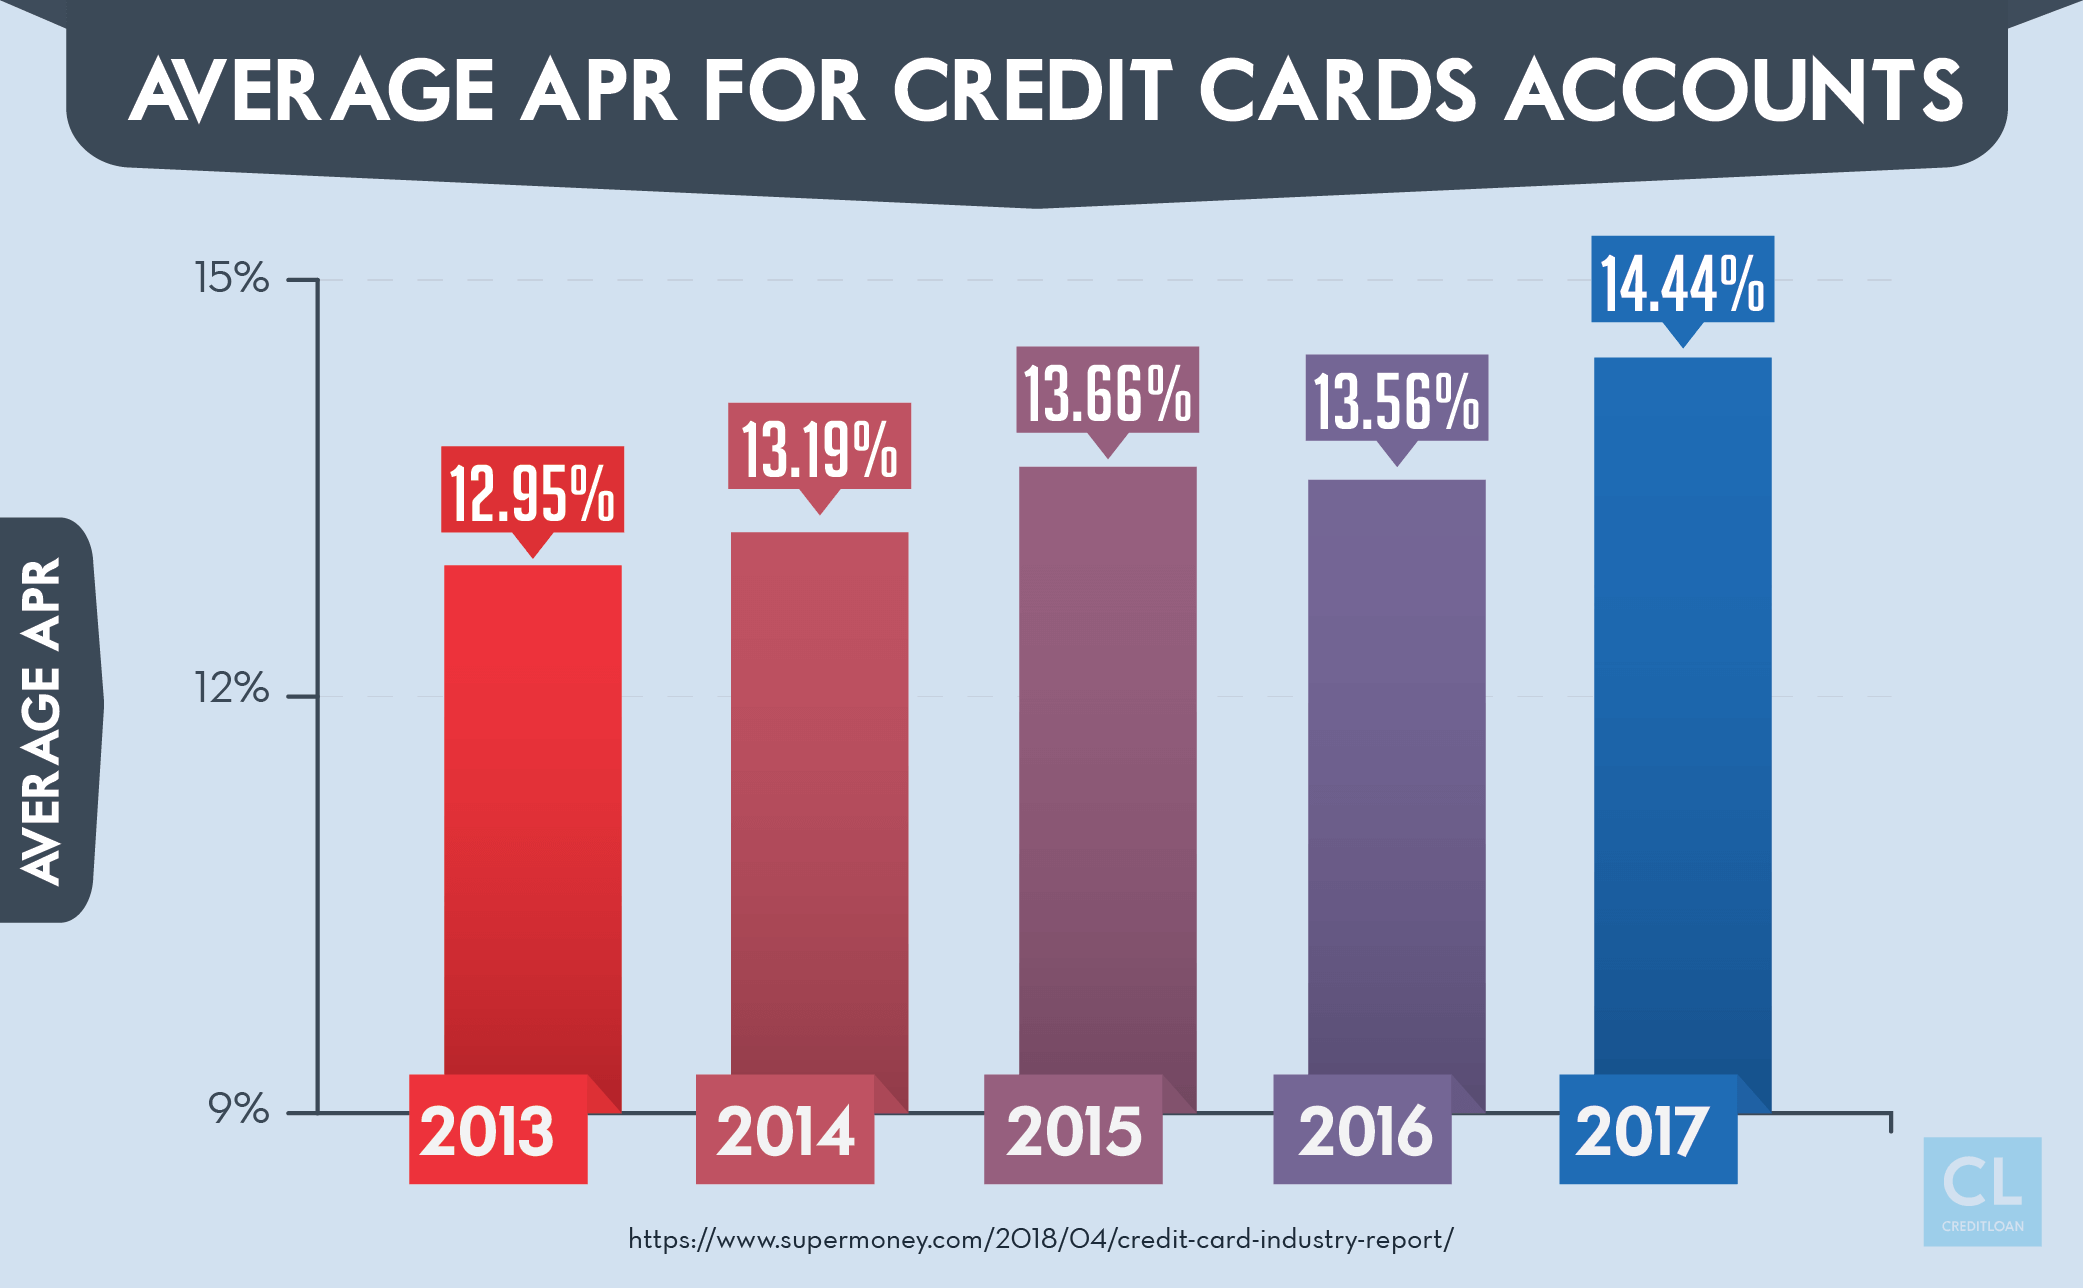 Average APR For Credit Cards Accounts from 2013-2017